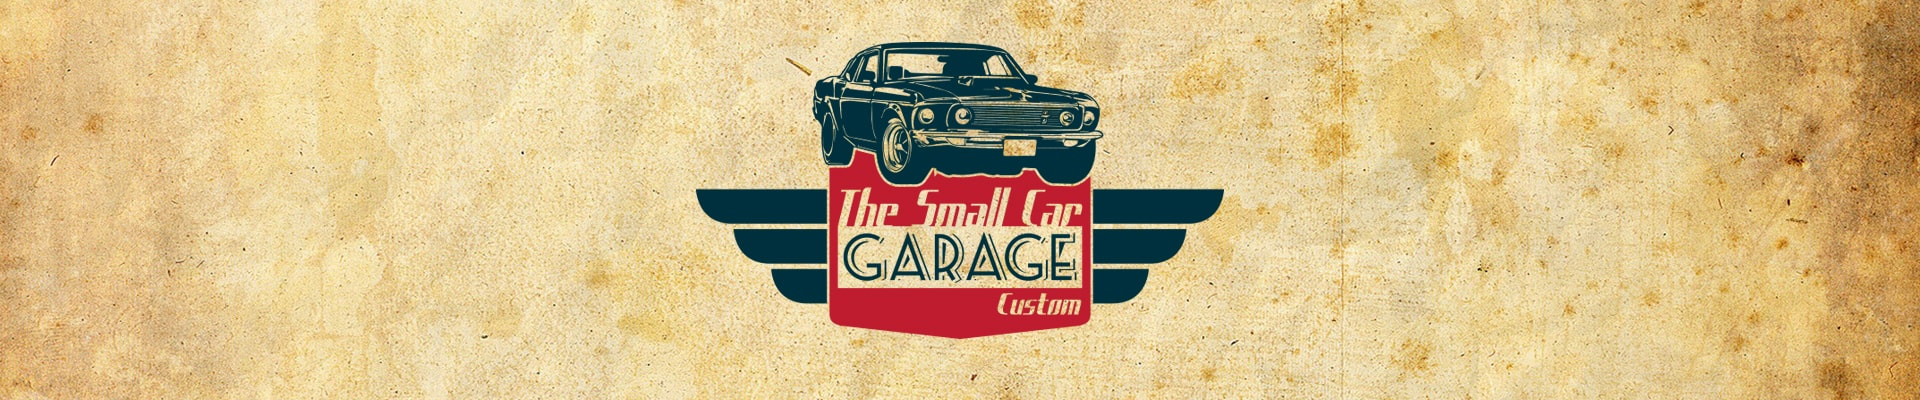 SmallCarsGarage